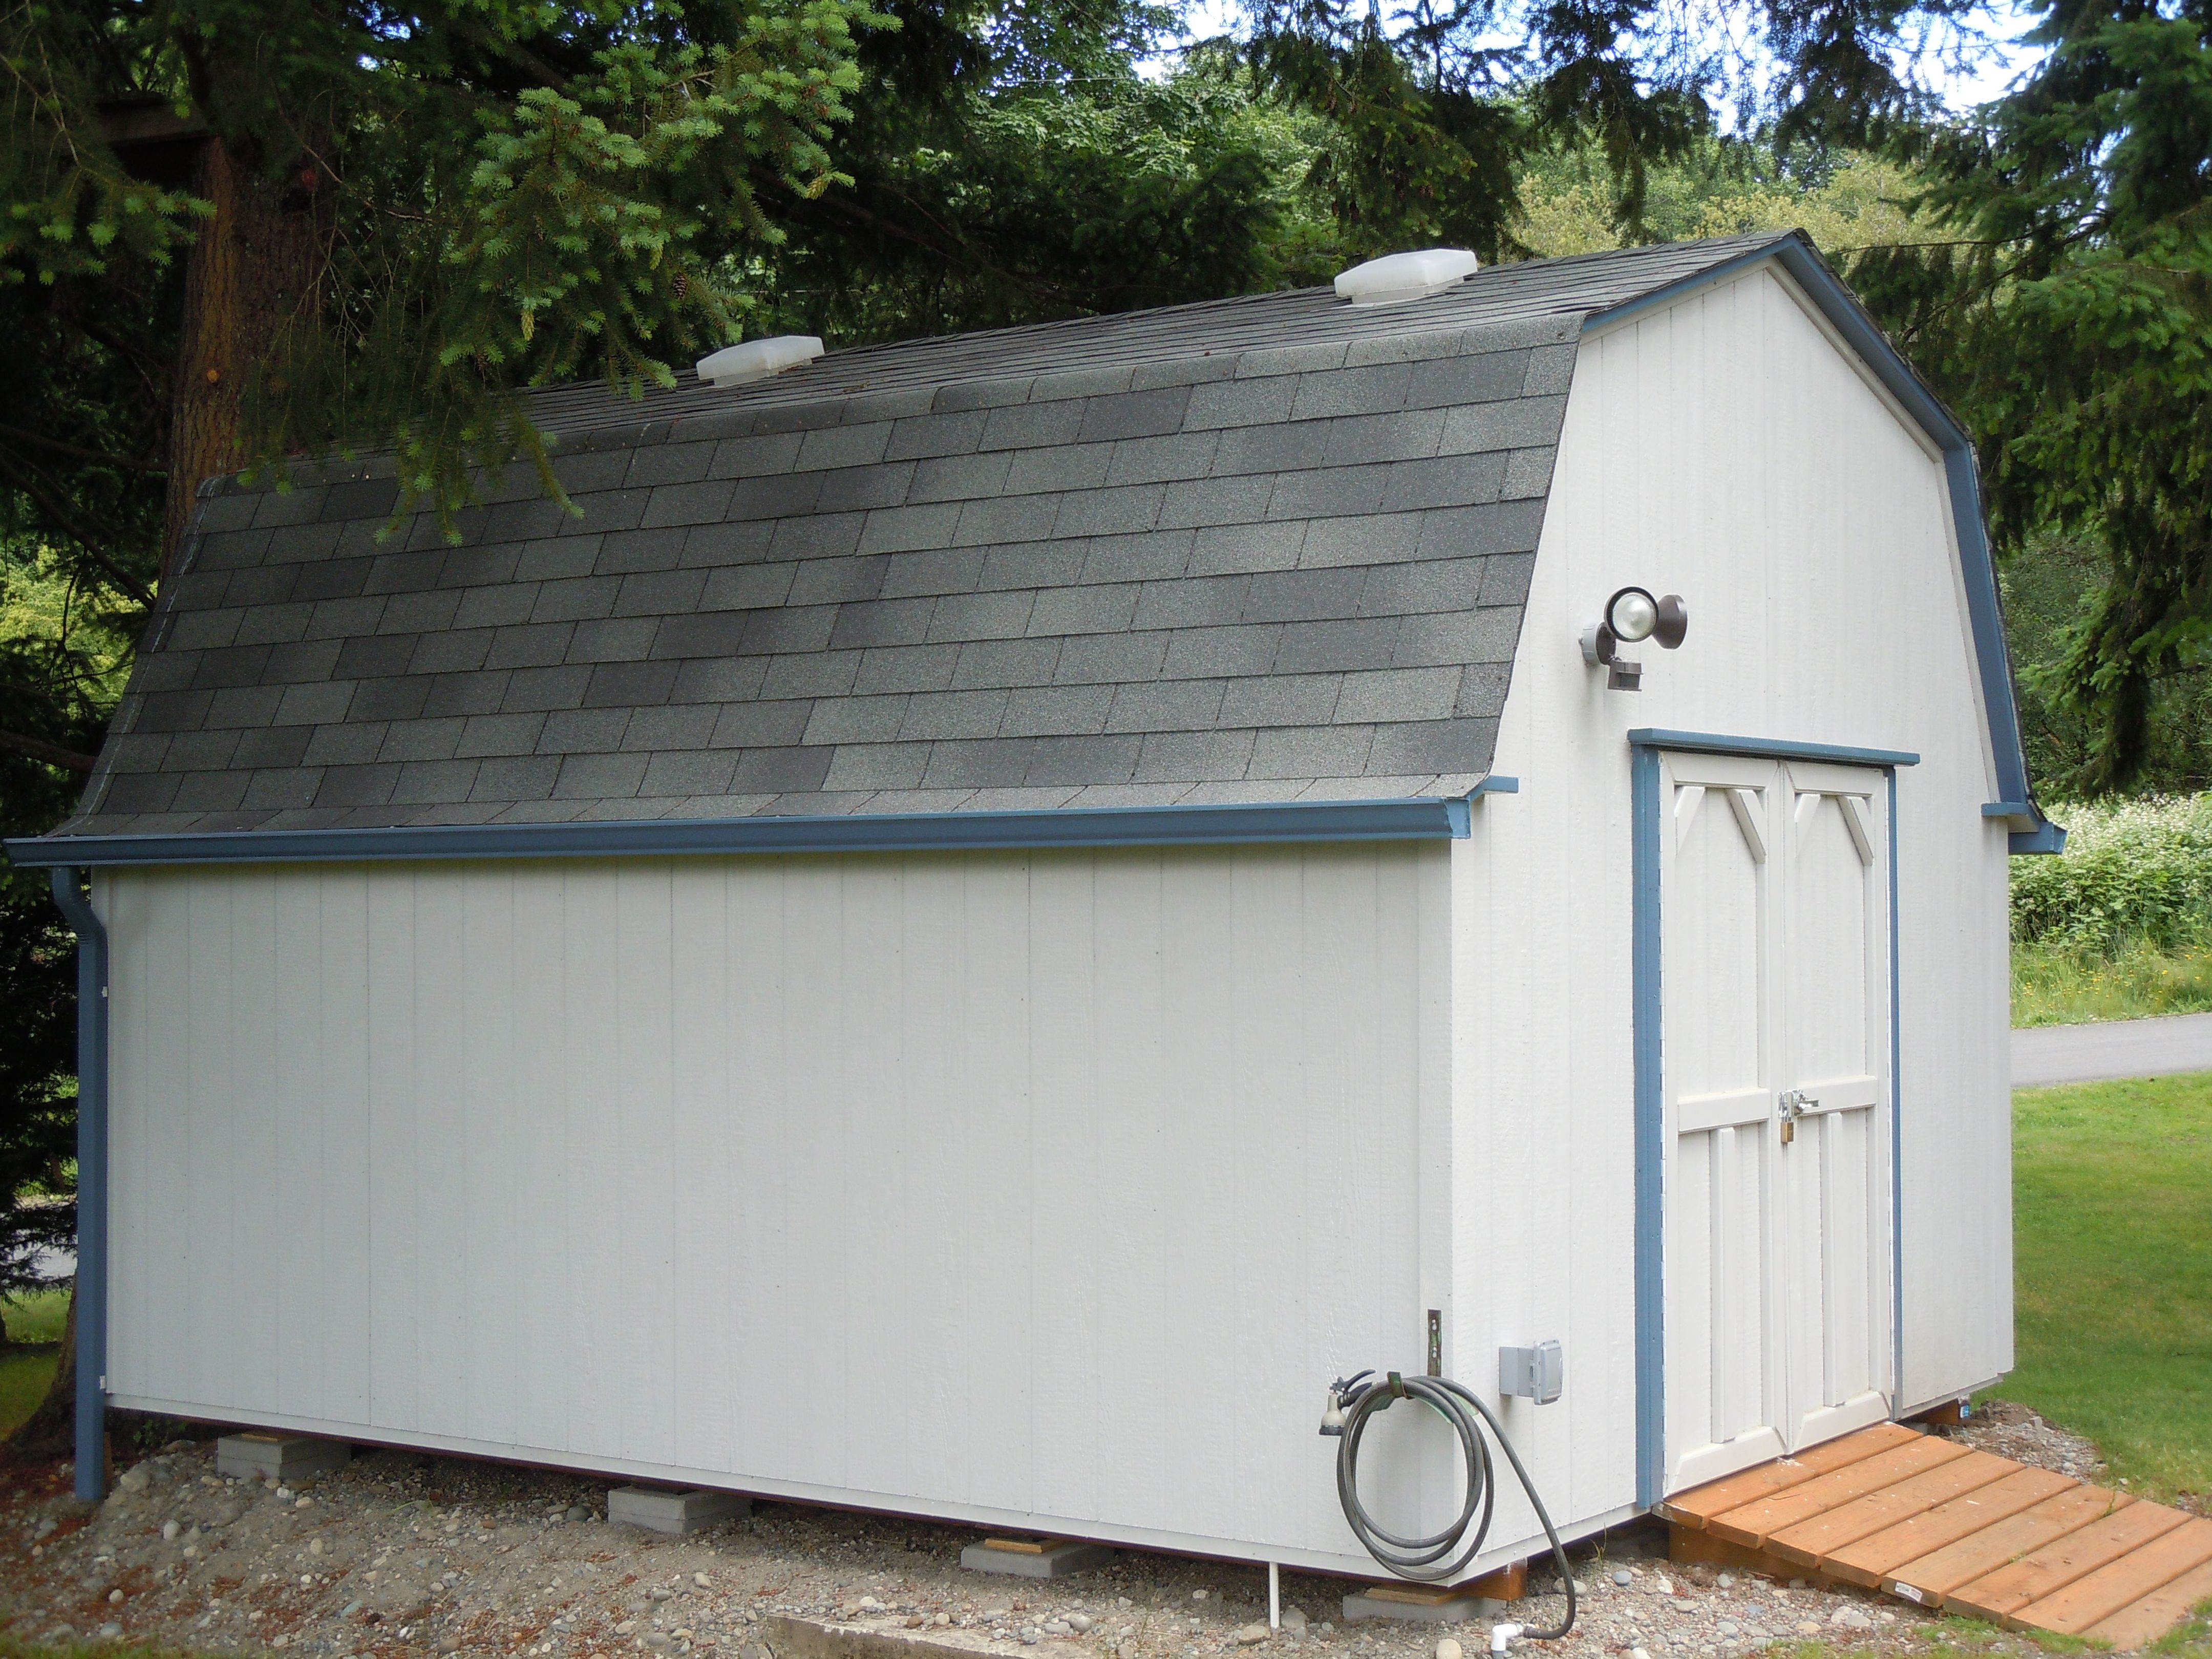 Barn Style With Two Clear Roof Vents Double Door Gutters And Ramp Storage Garden Shed Tool Shed Playhouse Craft Room Mother Play Houses Shed Barn Style